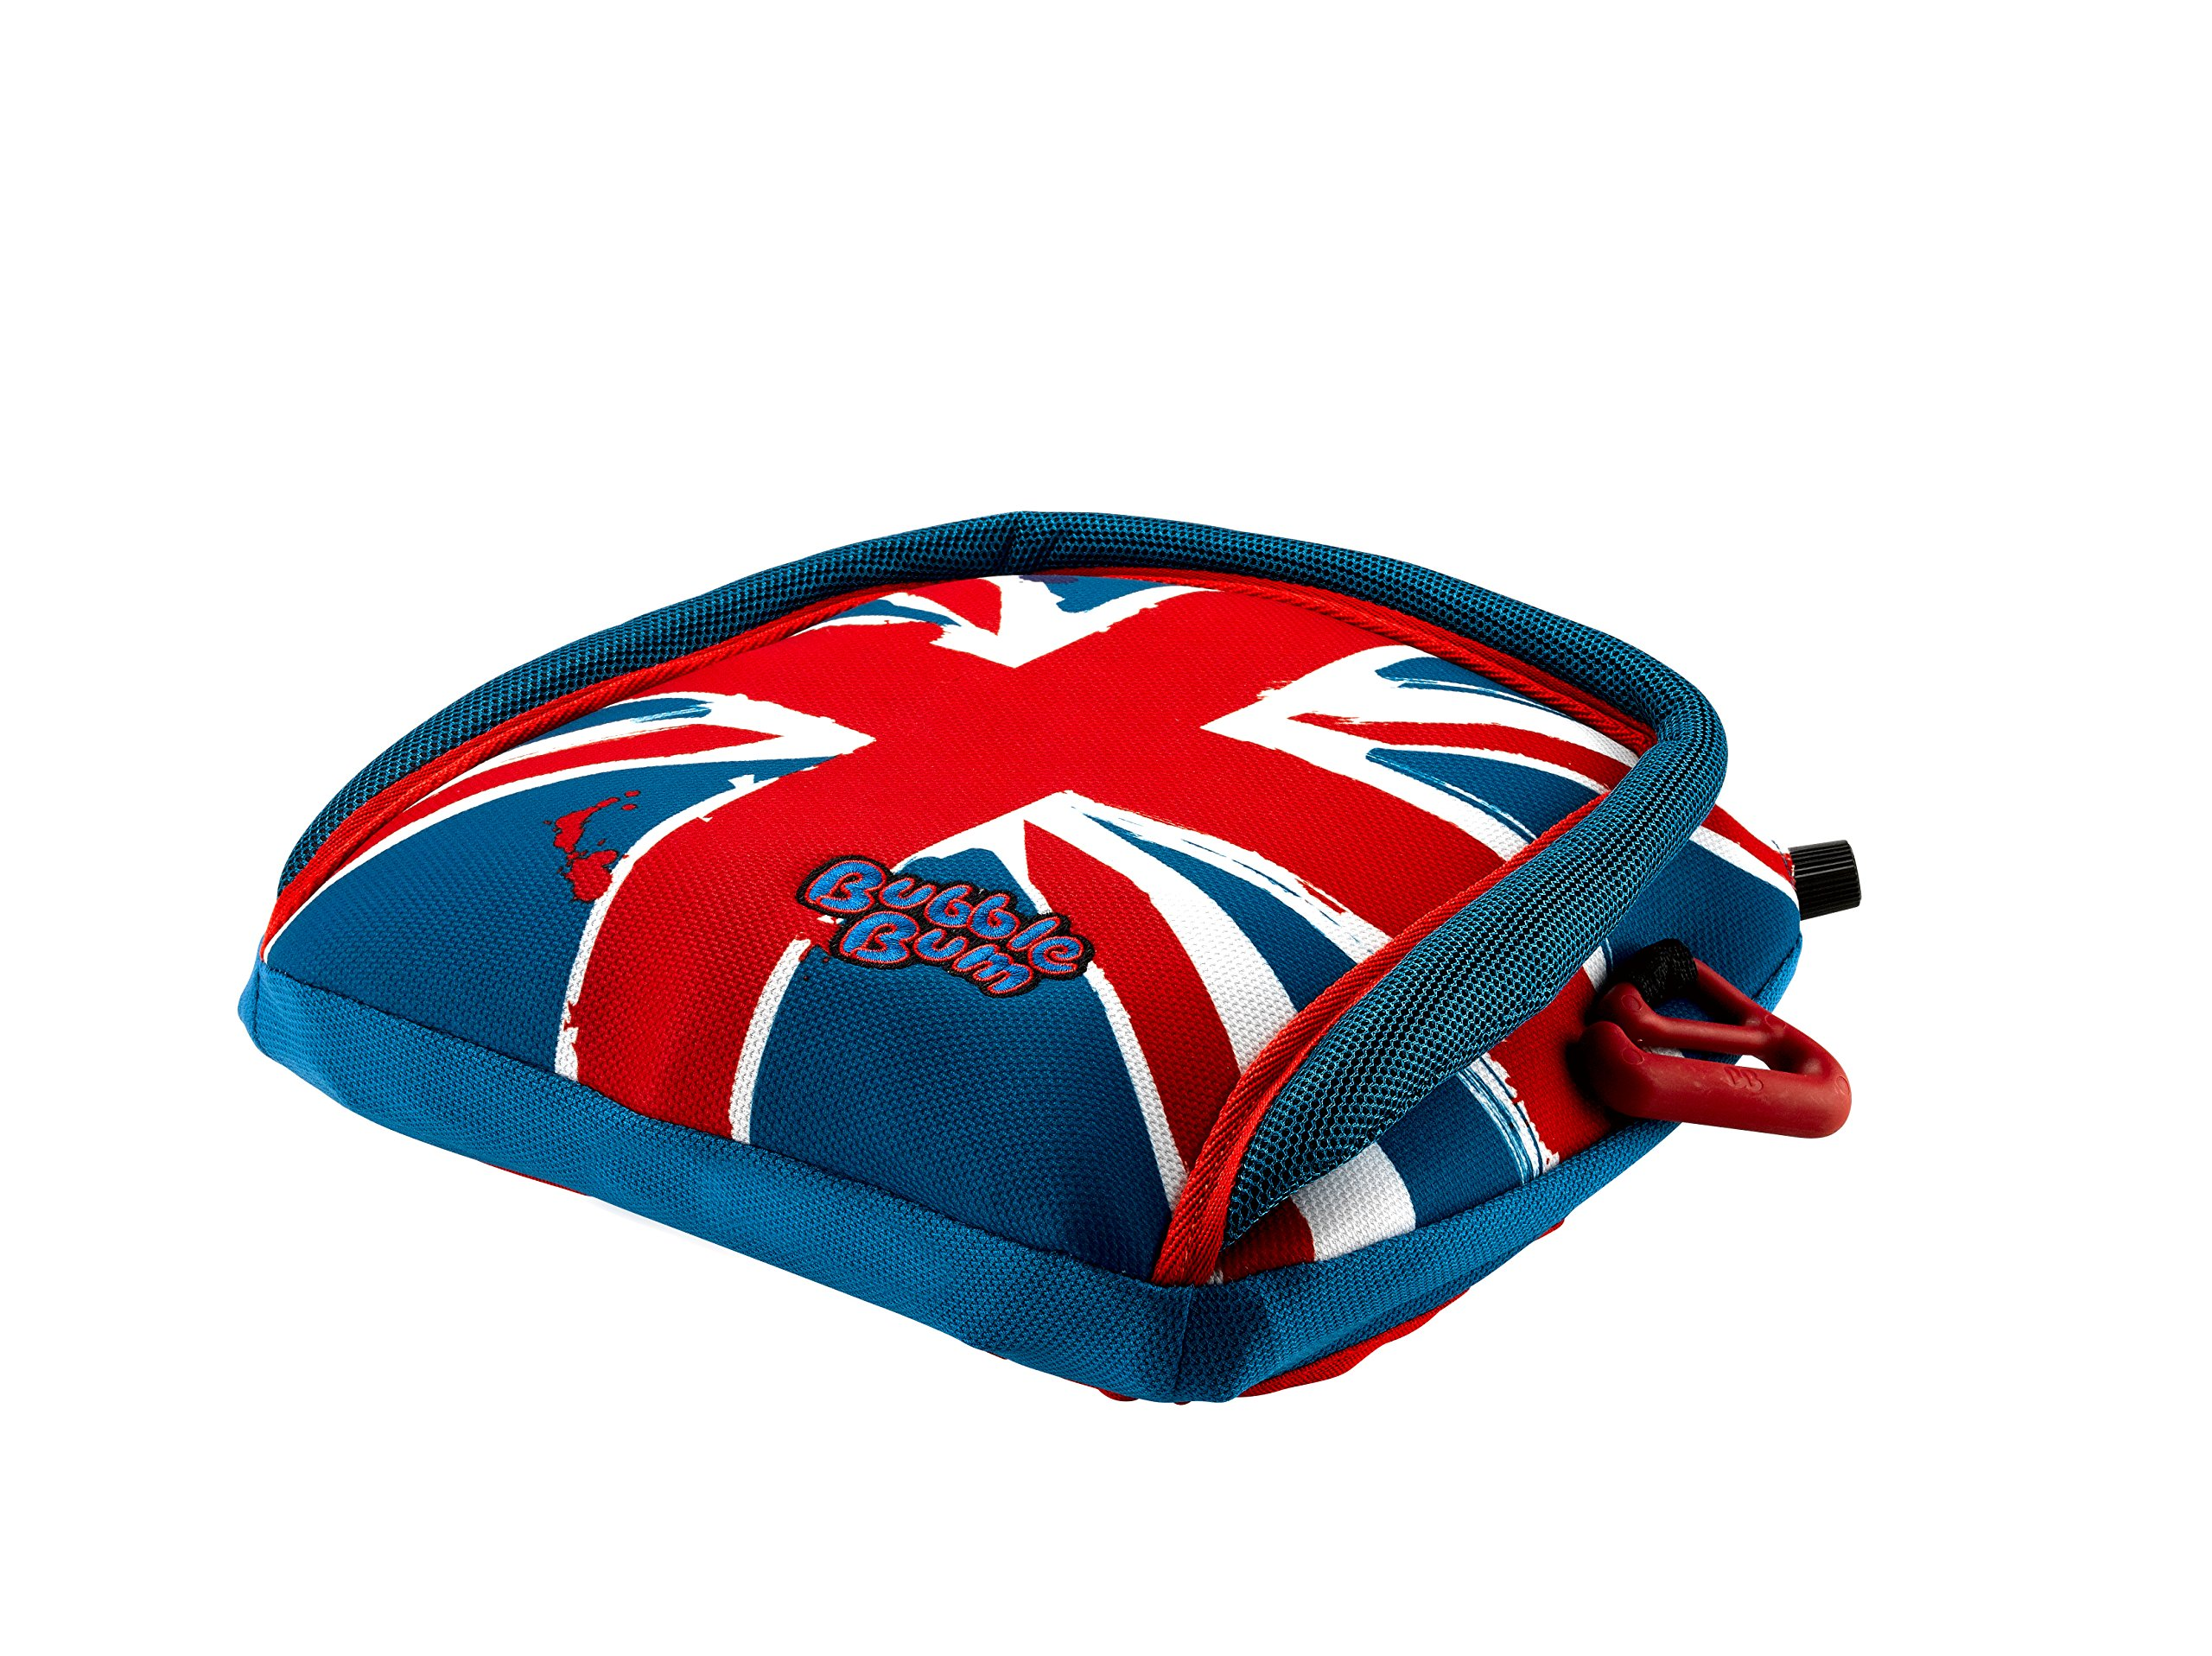 """BubbleBum Travel Car Booster Seat, Group 2/3, Union Jack Bubblebum The world's first inflatable & packable, portable & safe car booster seat for children aged 4 - 11, 15 - 36kg - the globally award-winning child safety booster seat Approved to the EU Safety Standard R44.04 for both Groups 2 and 3 Narrow, light and foldable design makes this perfect for travel, taxis, car rental, car sharing and tight """"three across"""" fits 1"""